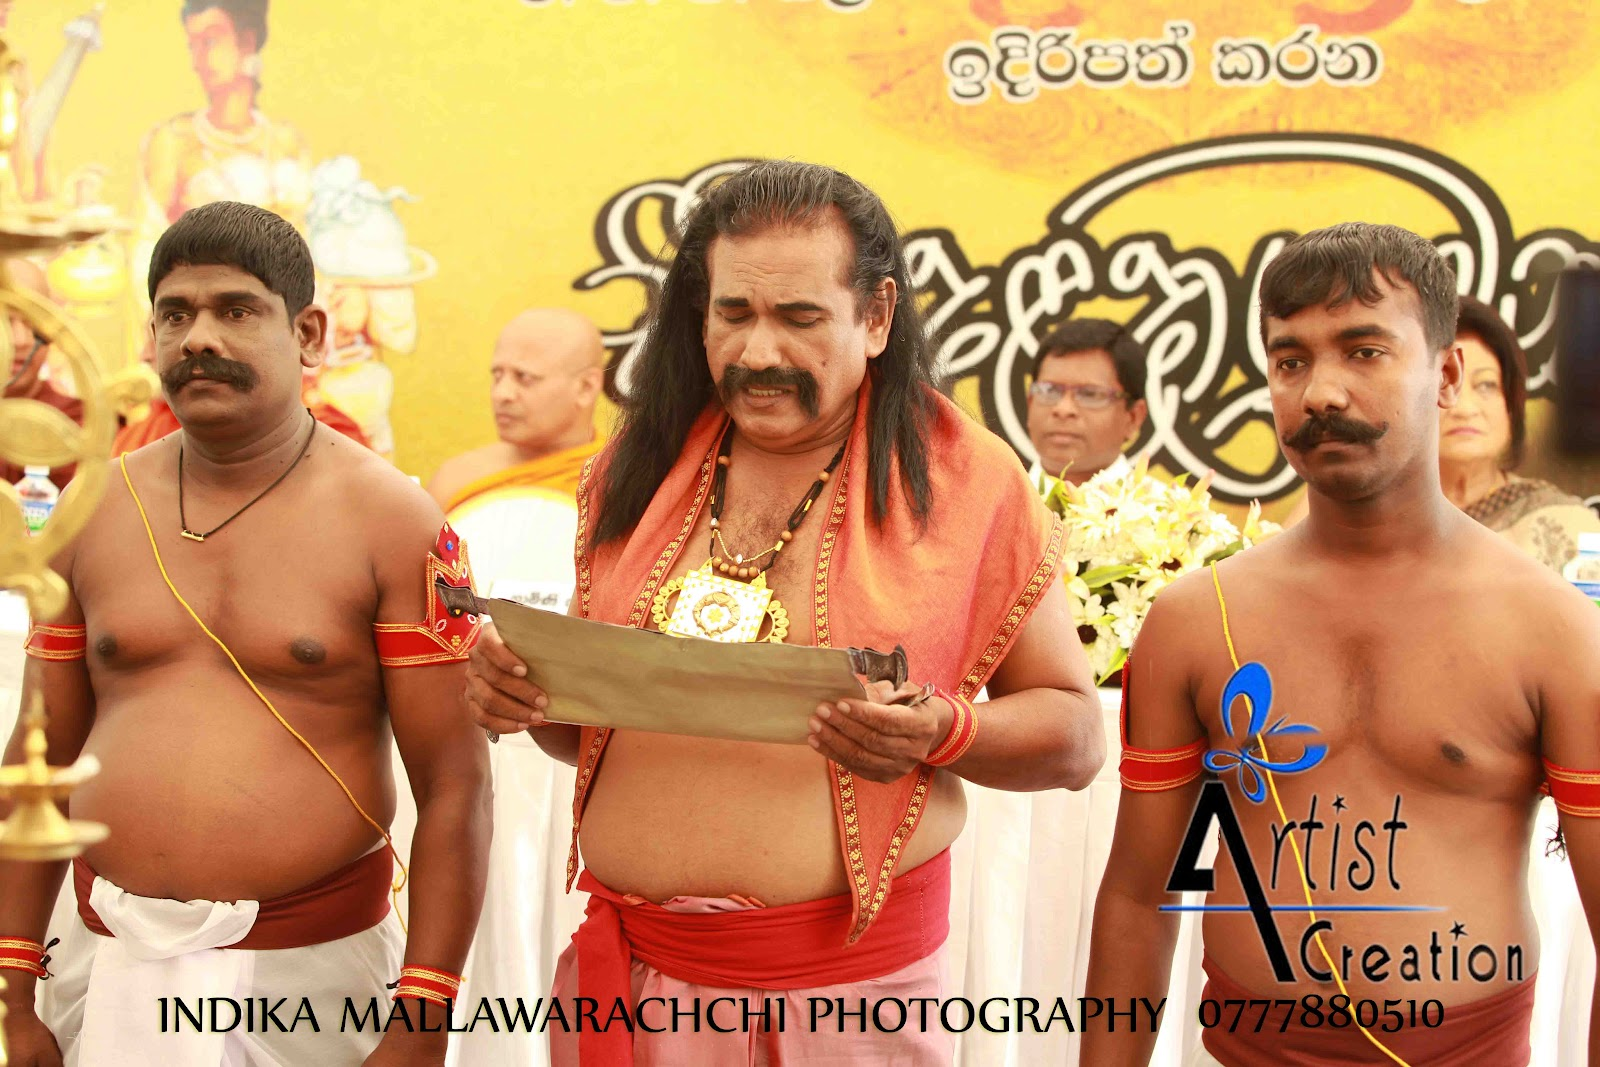 Sri Dalada Gamanaya New sinhala movie Muhurath Day | ශ්‍රී